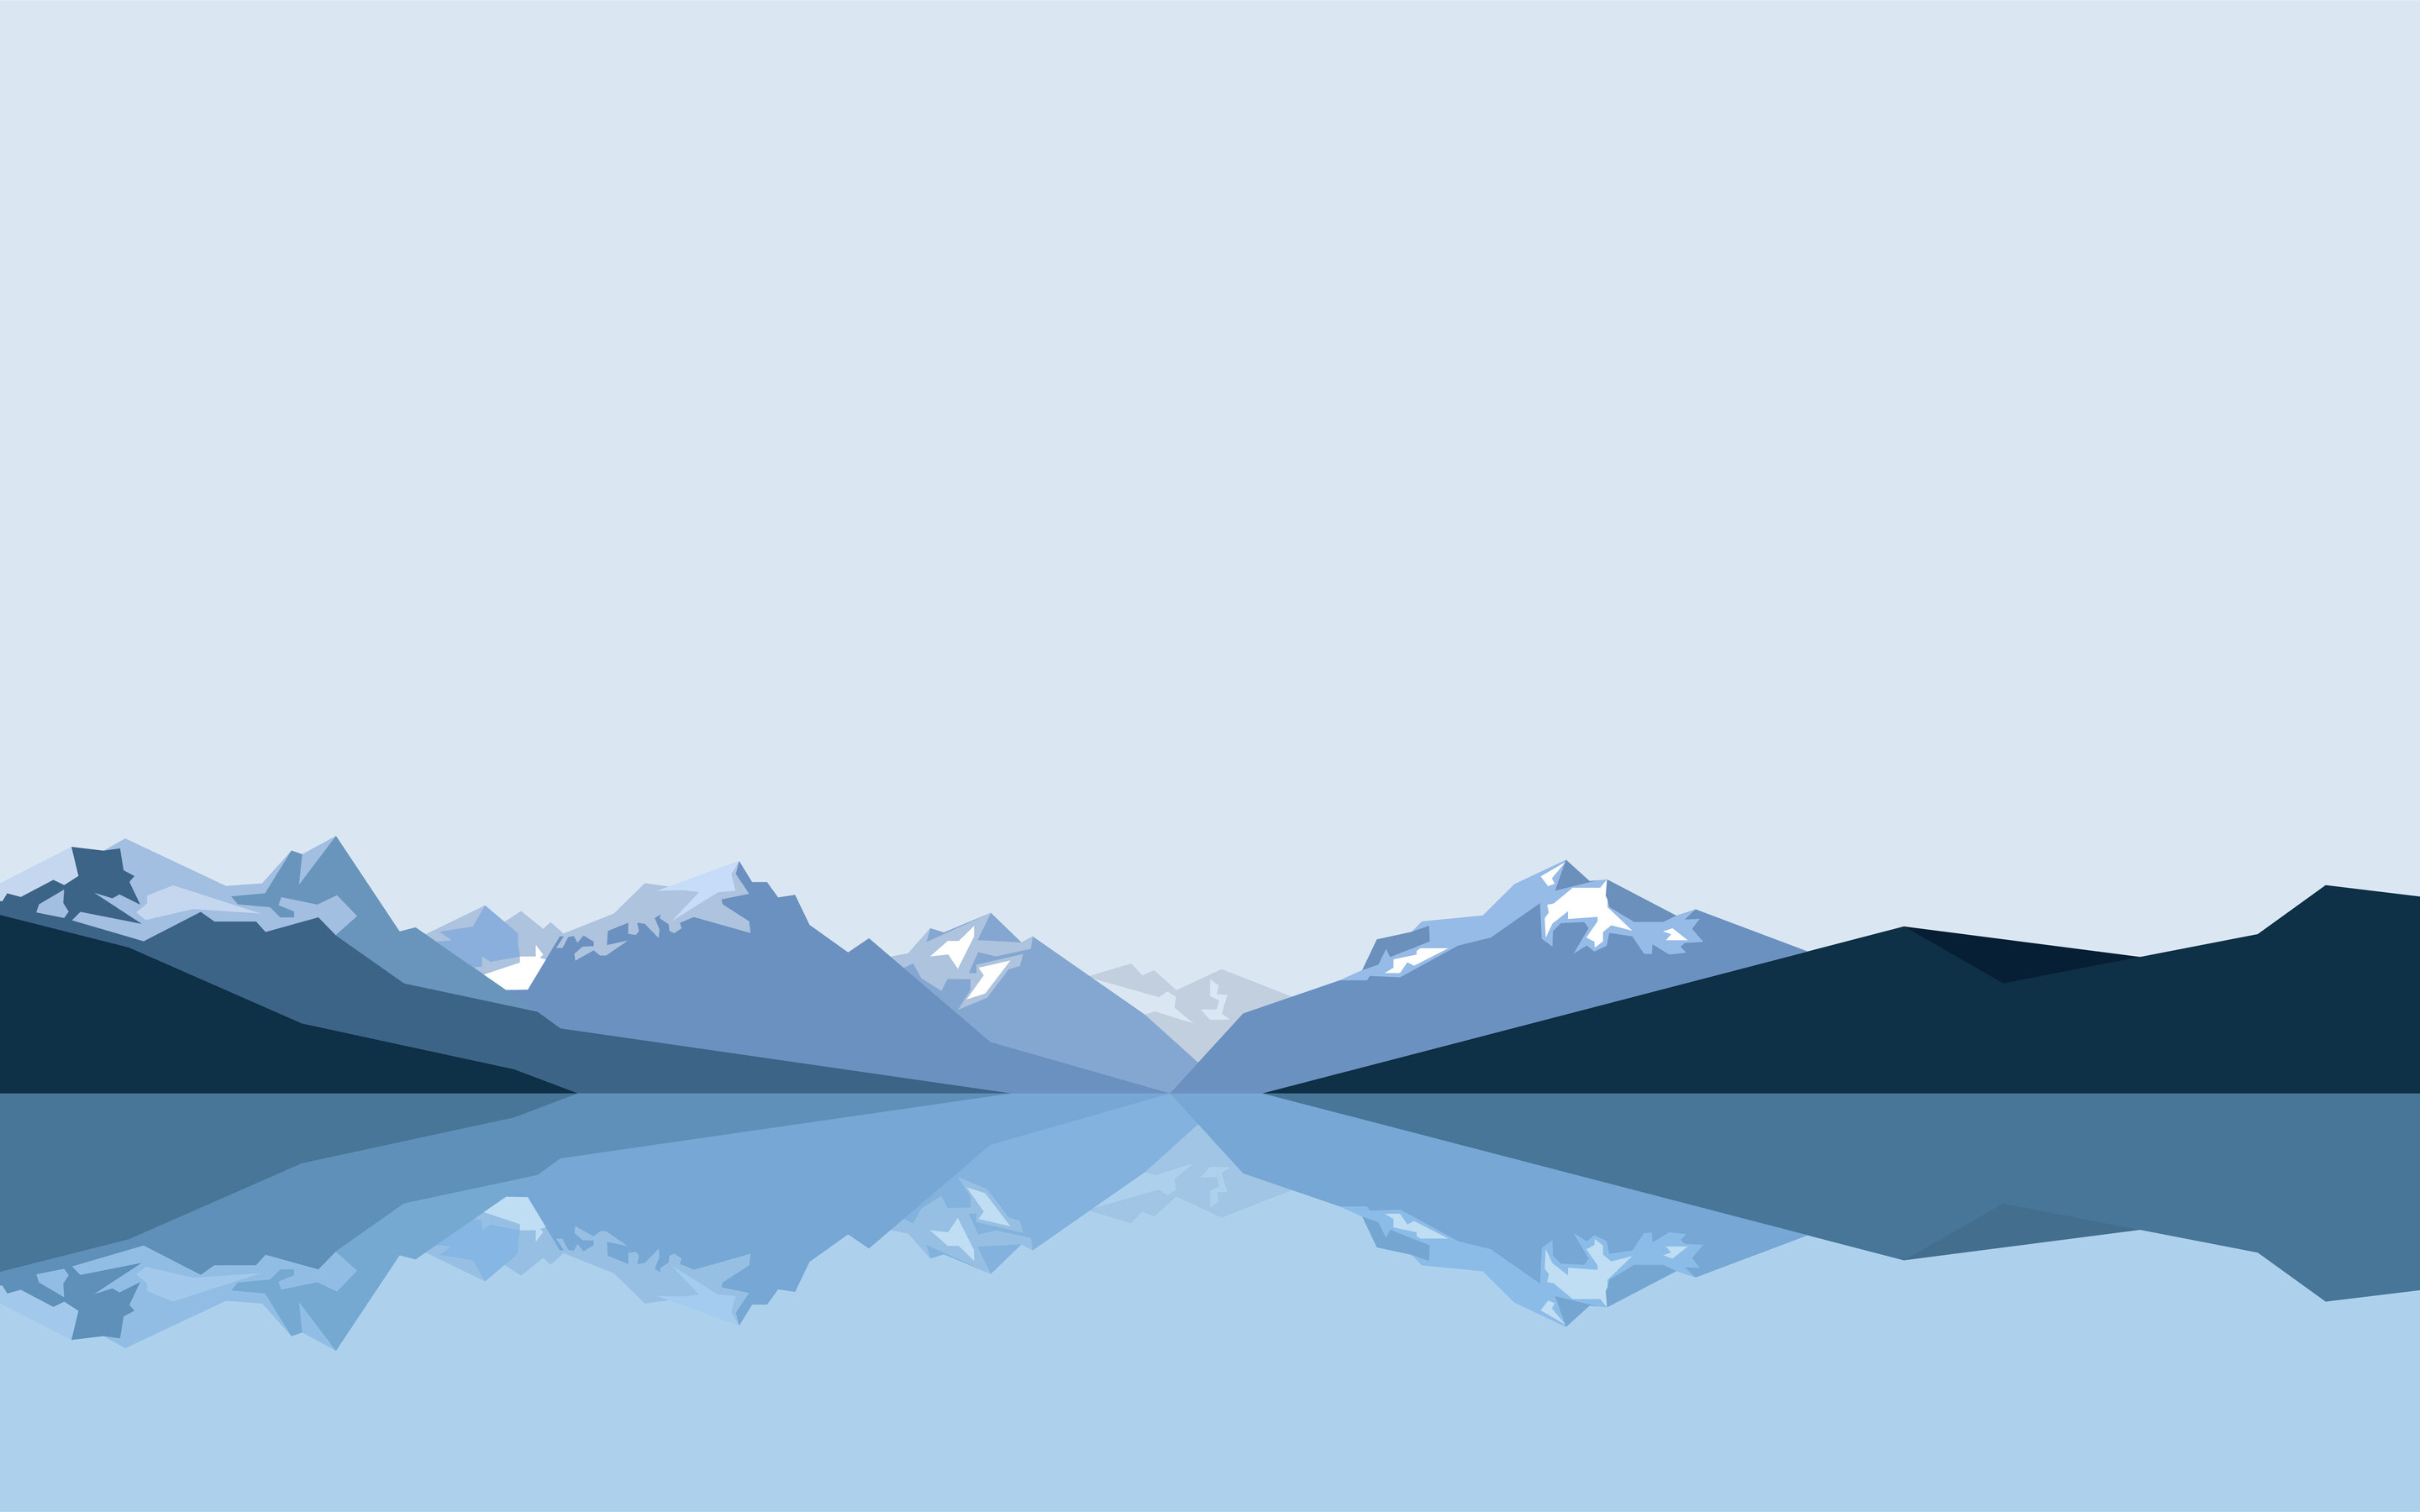 2880x1800 Minimalist Blue Mountains 8k Macbook Pro Retina